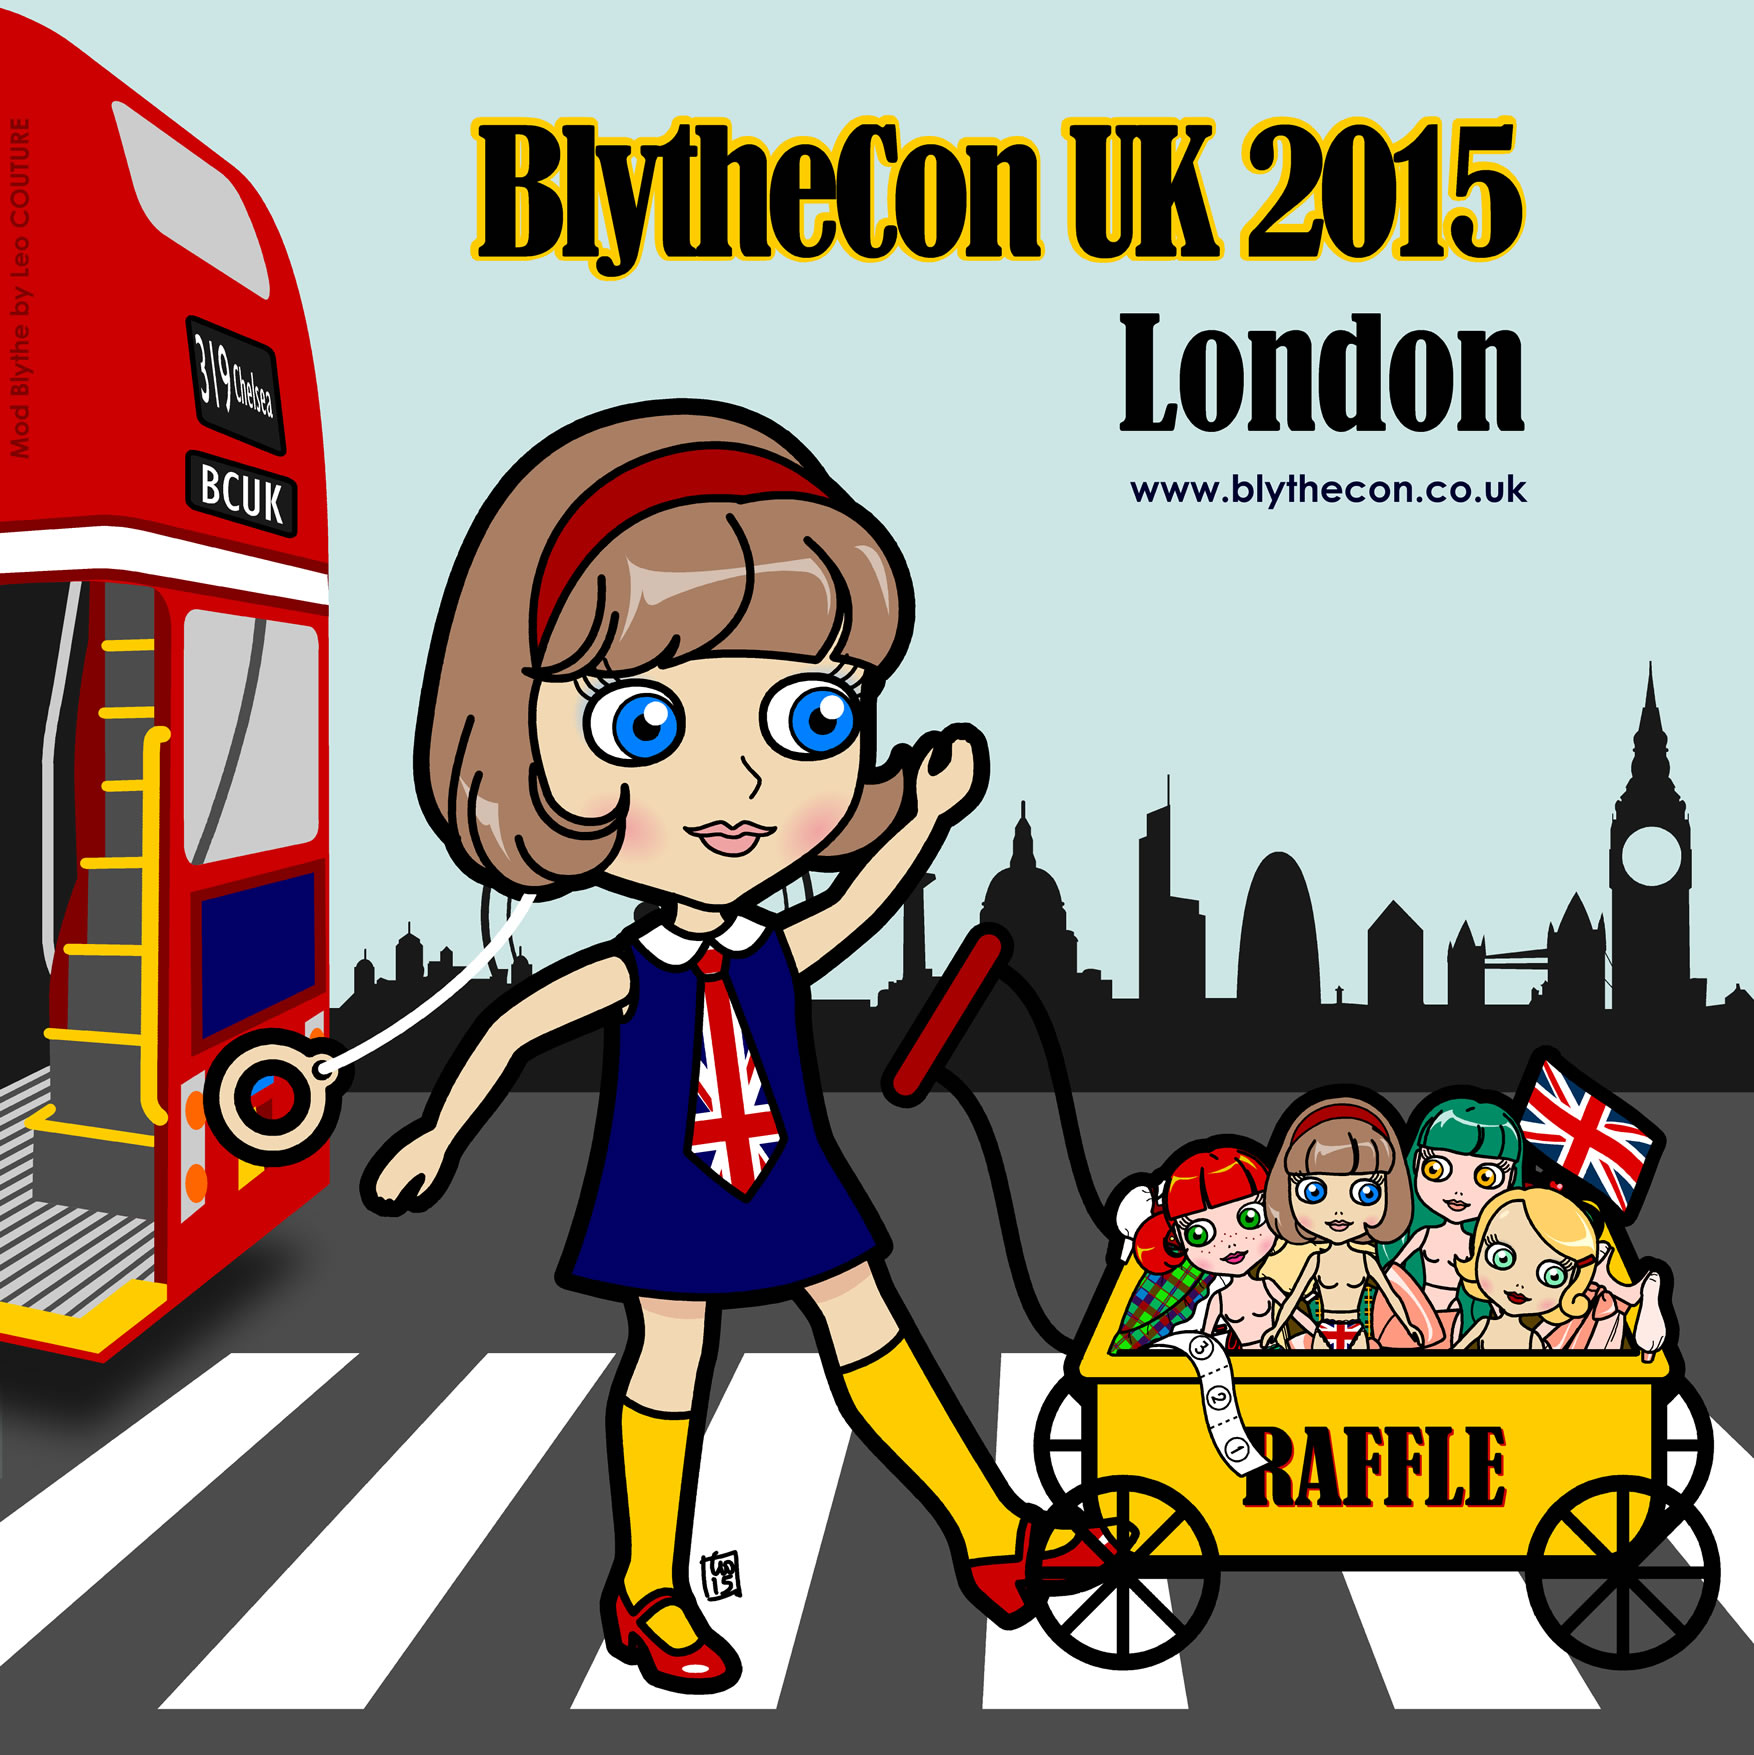 bcuk2015_blythecon_uk_2015_london_raffle_lottery_01